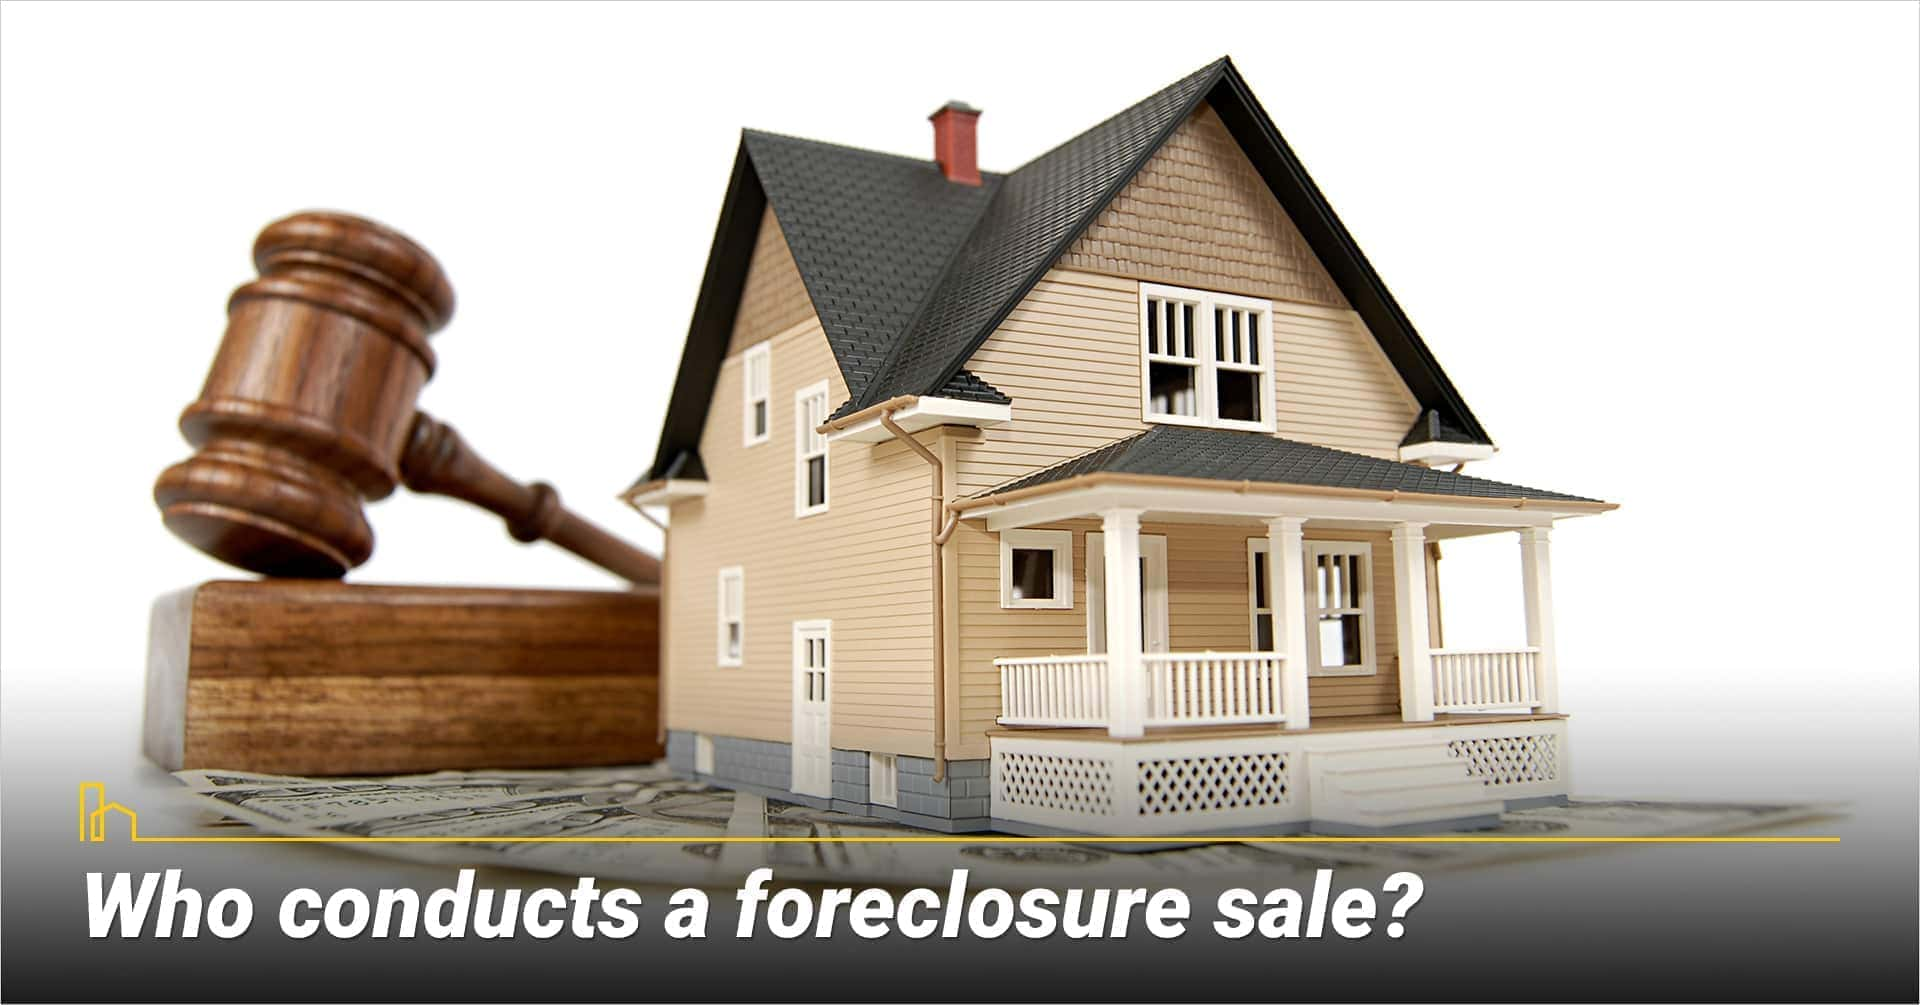 Who conducts a foreclosure sale? County Sheriff sells the foreclosed property